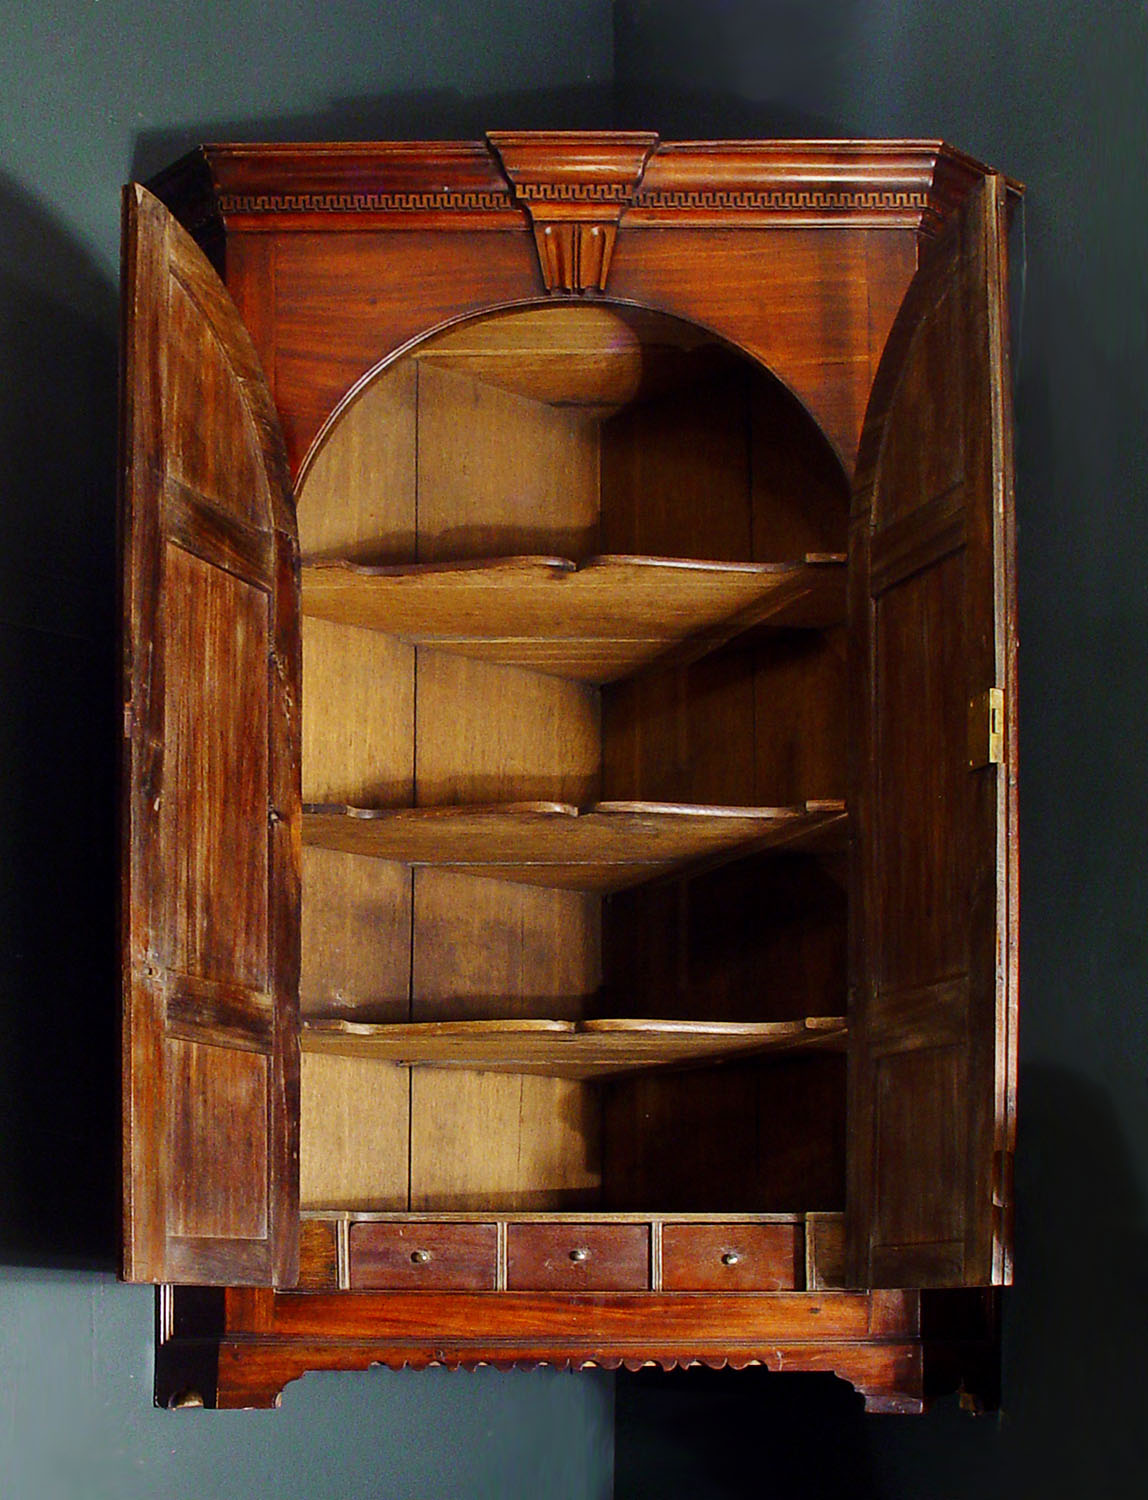 Antique George III Corner Cupboard in Mahogany with oak shelves